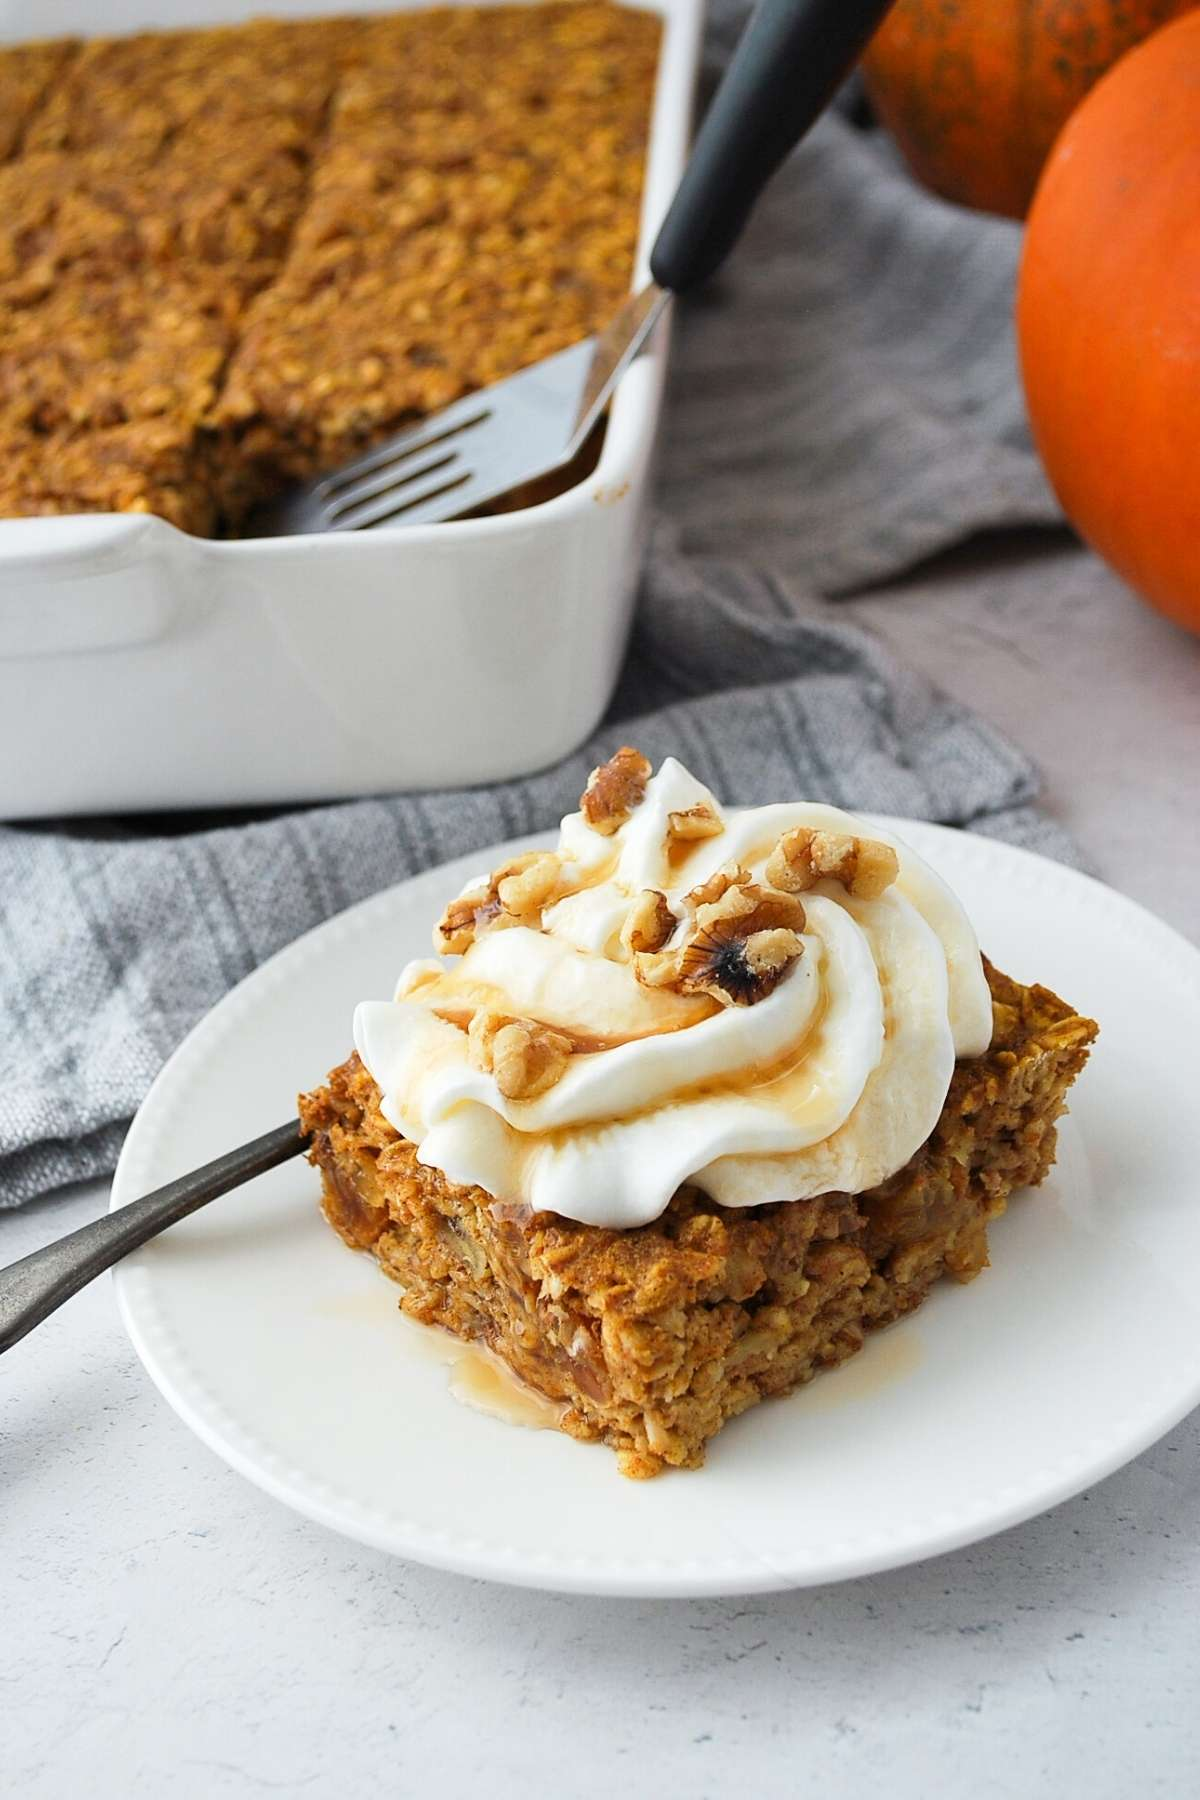 a slice of pumpkin baked oatmeal on a plate with whipped cream, nuts, and maple syrup on top with a pan of baked oats behind it